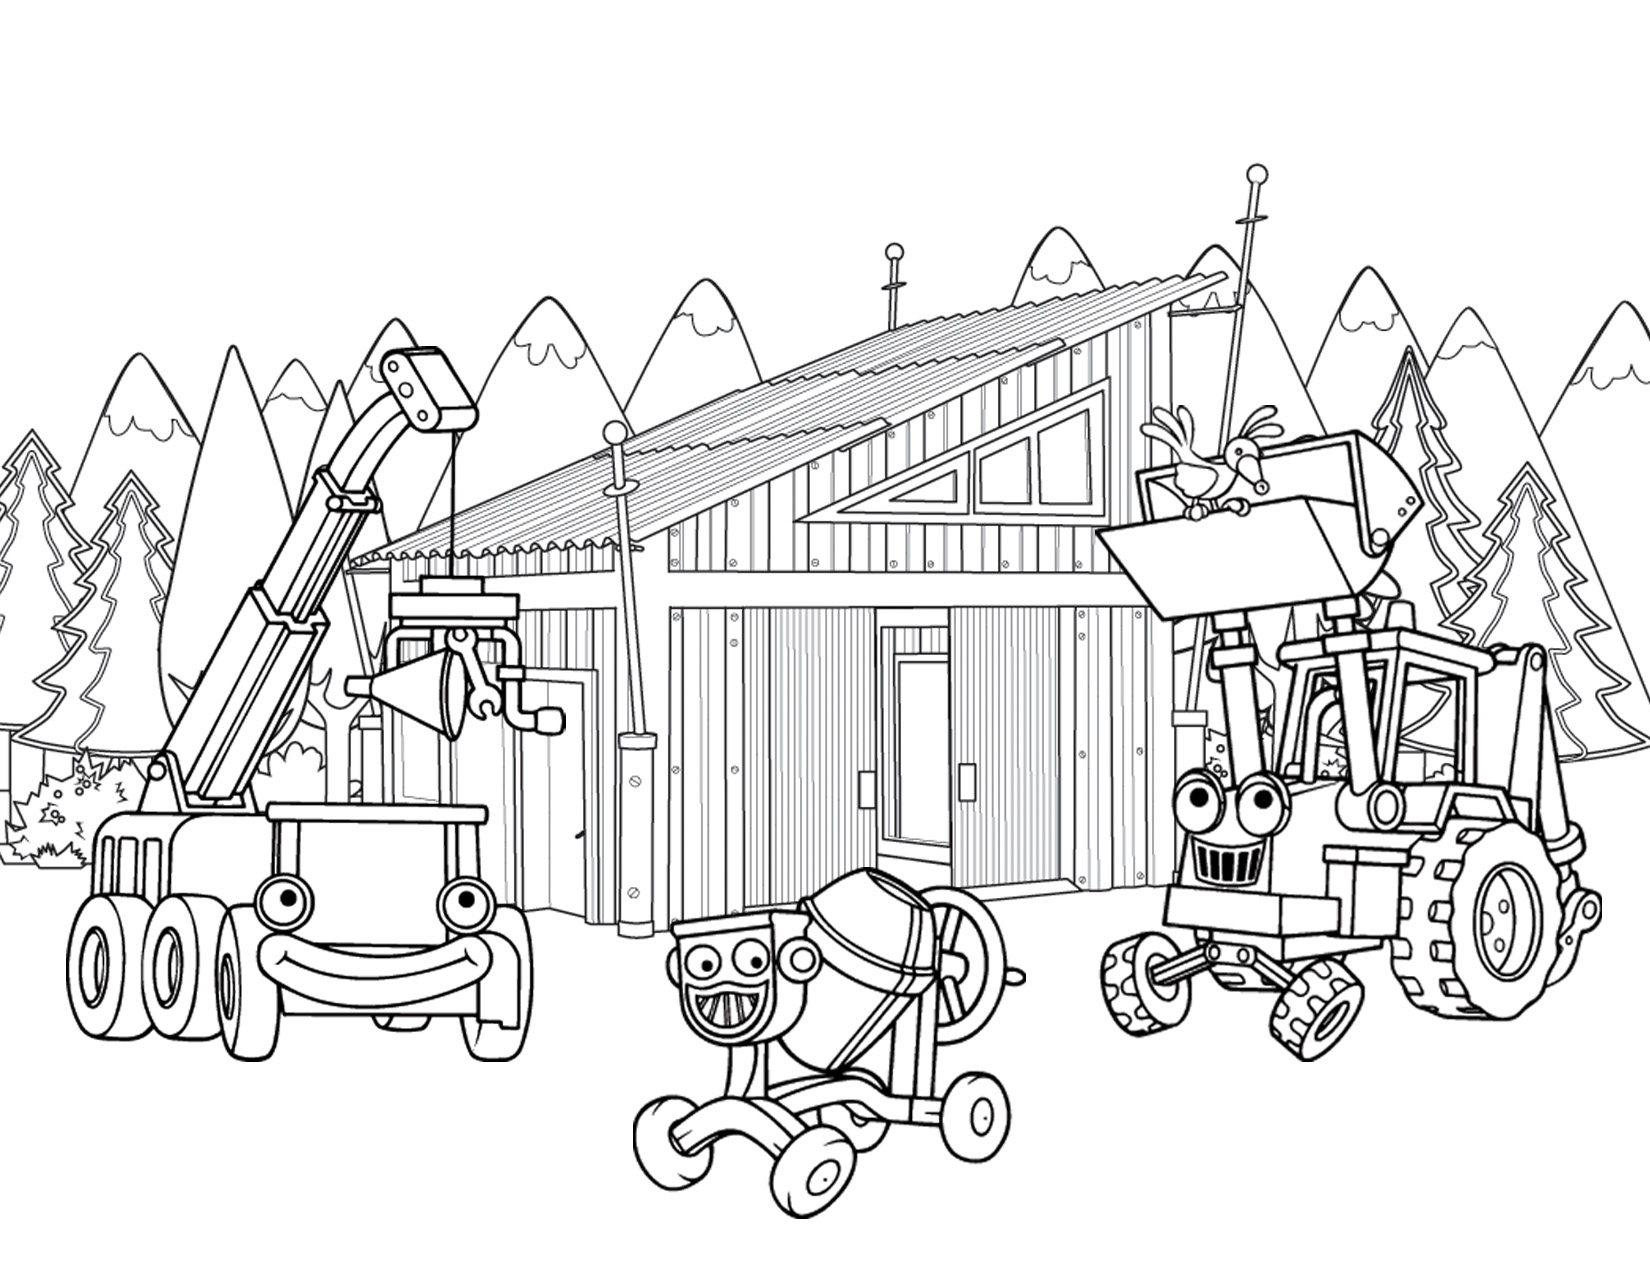 1650x1275 Heavy Construction Equipment Wheel Loader Coloring Page Letmecolor